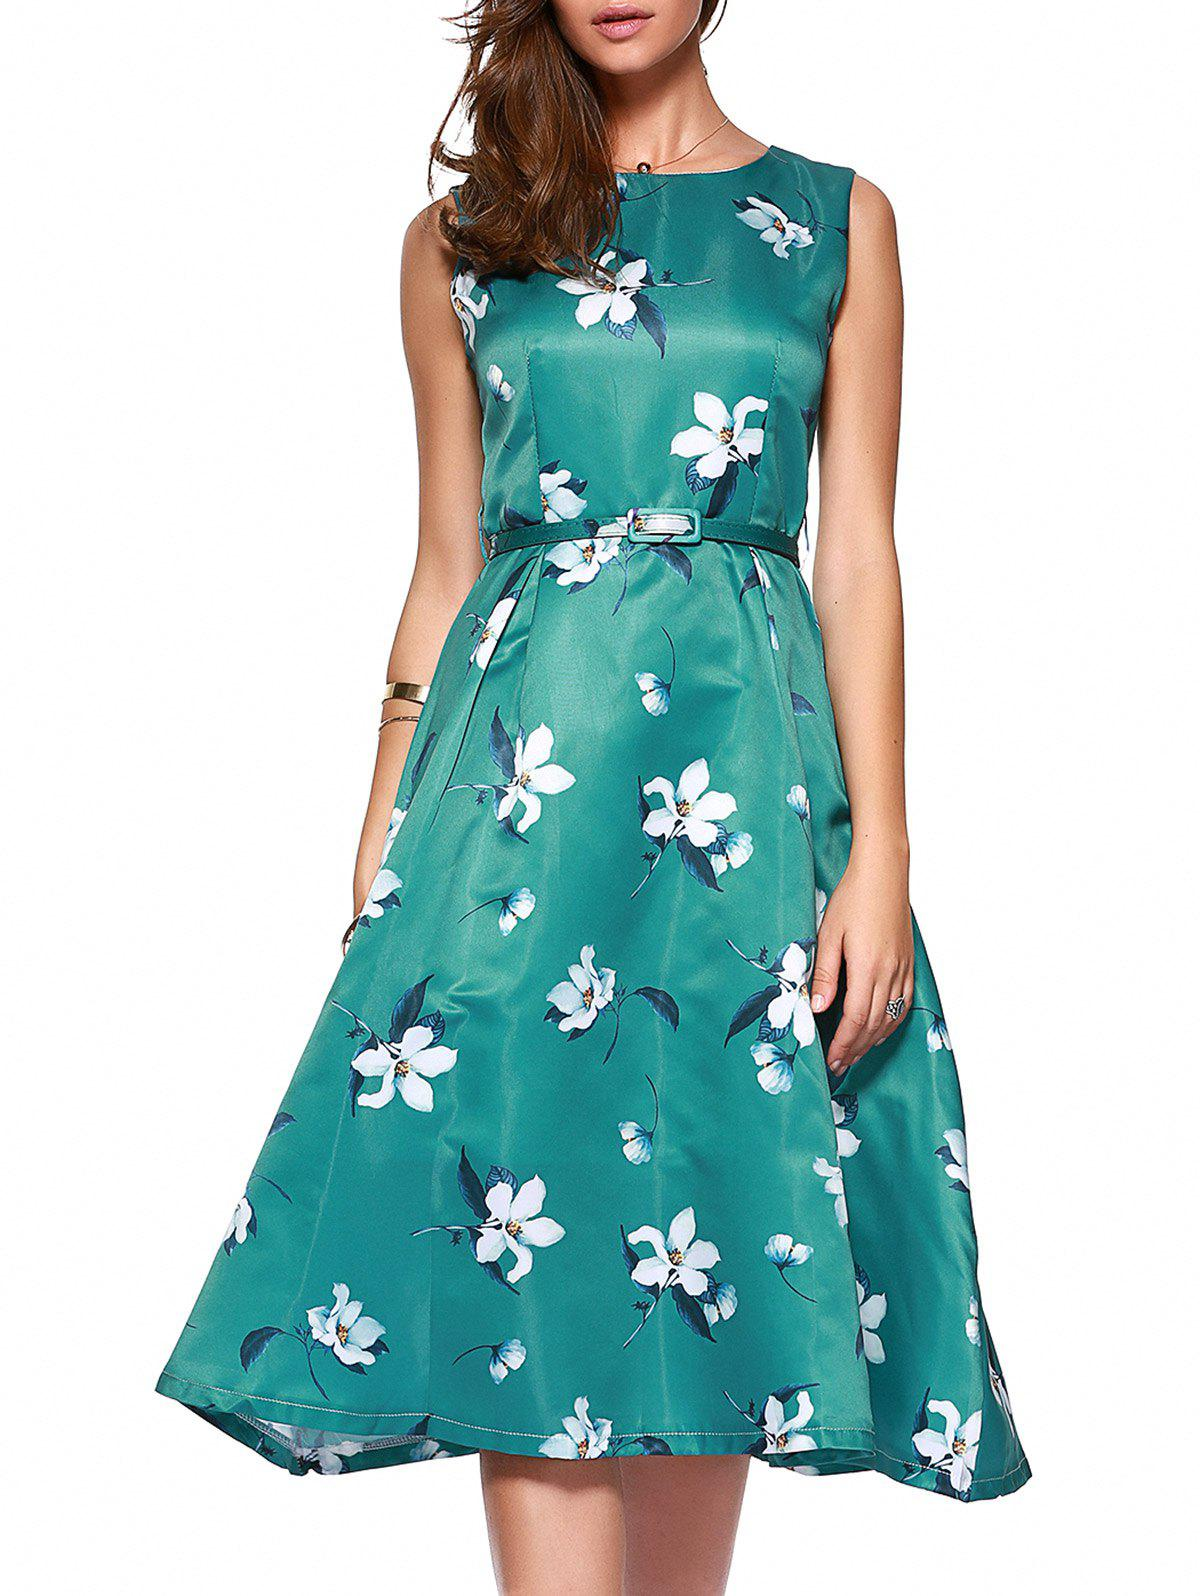 Sweet Women's Floral Print Belted Midi Dress - BLACKISH GREEN L